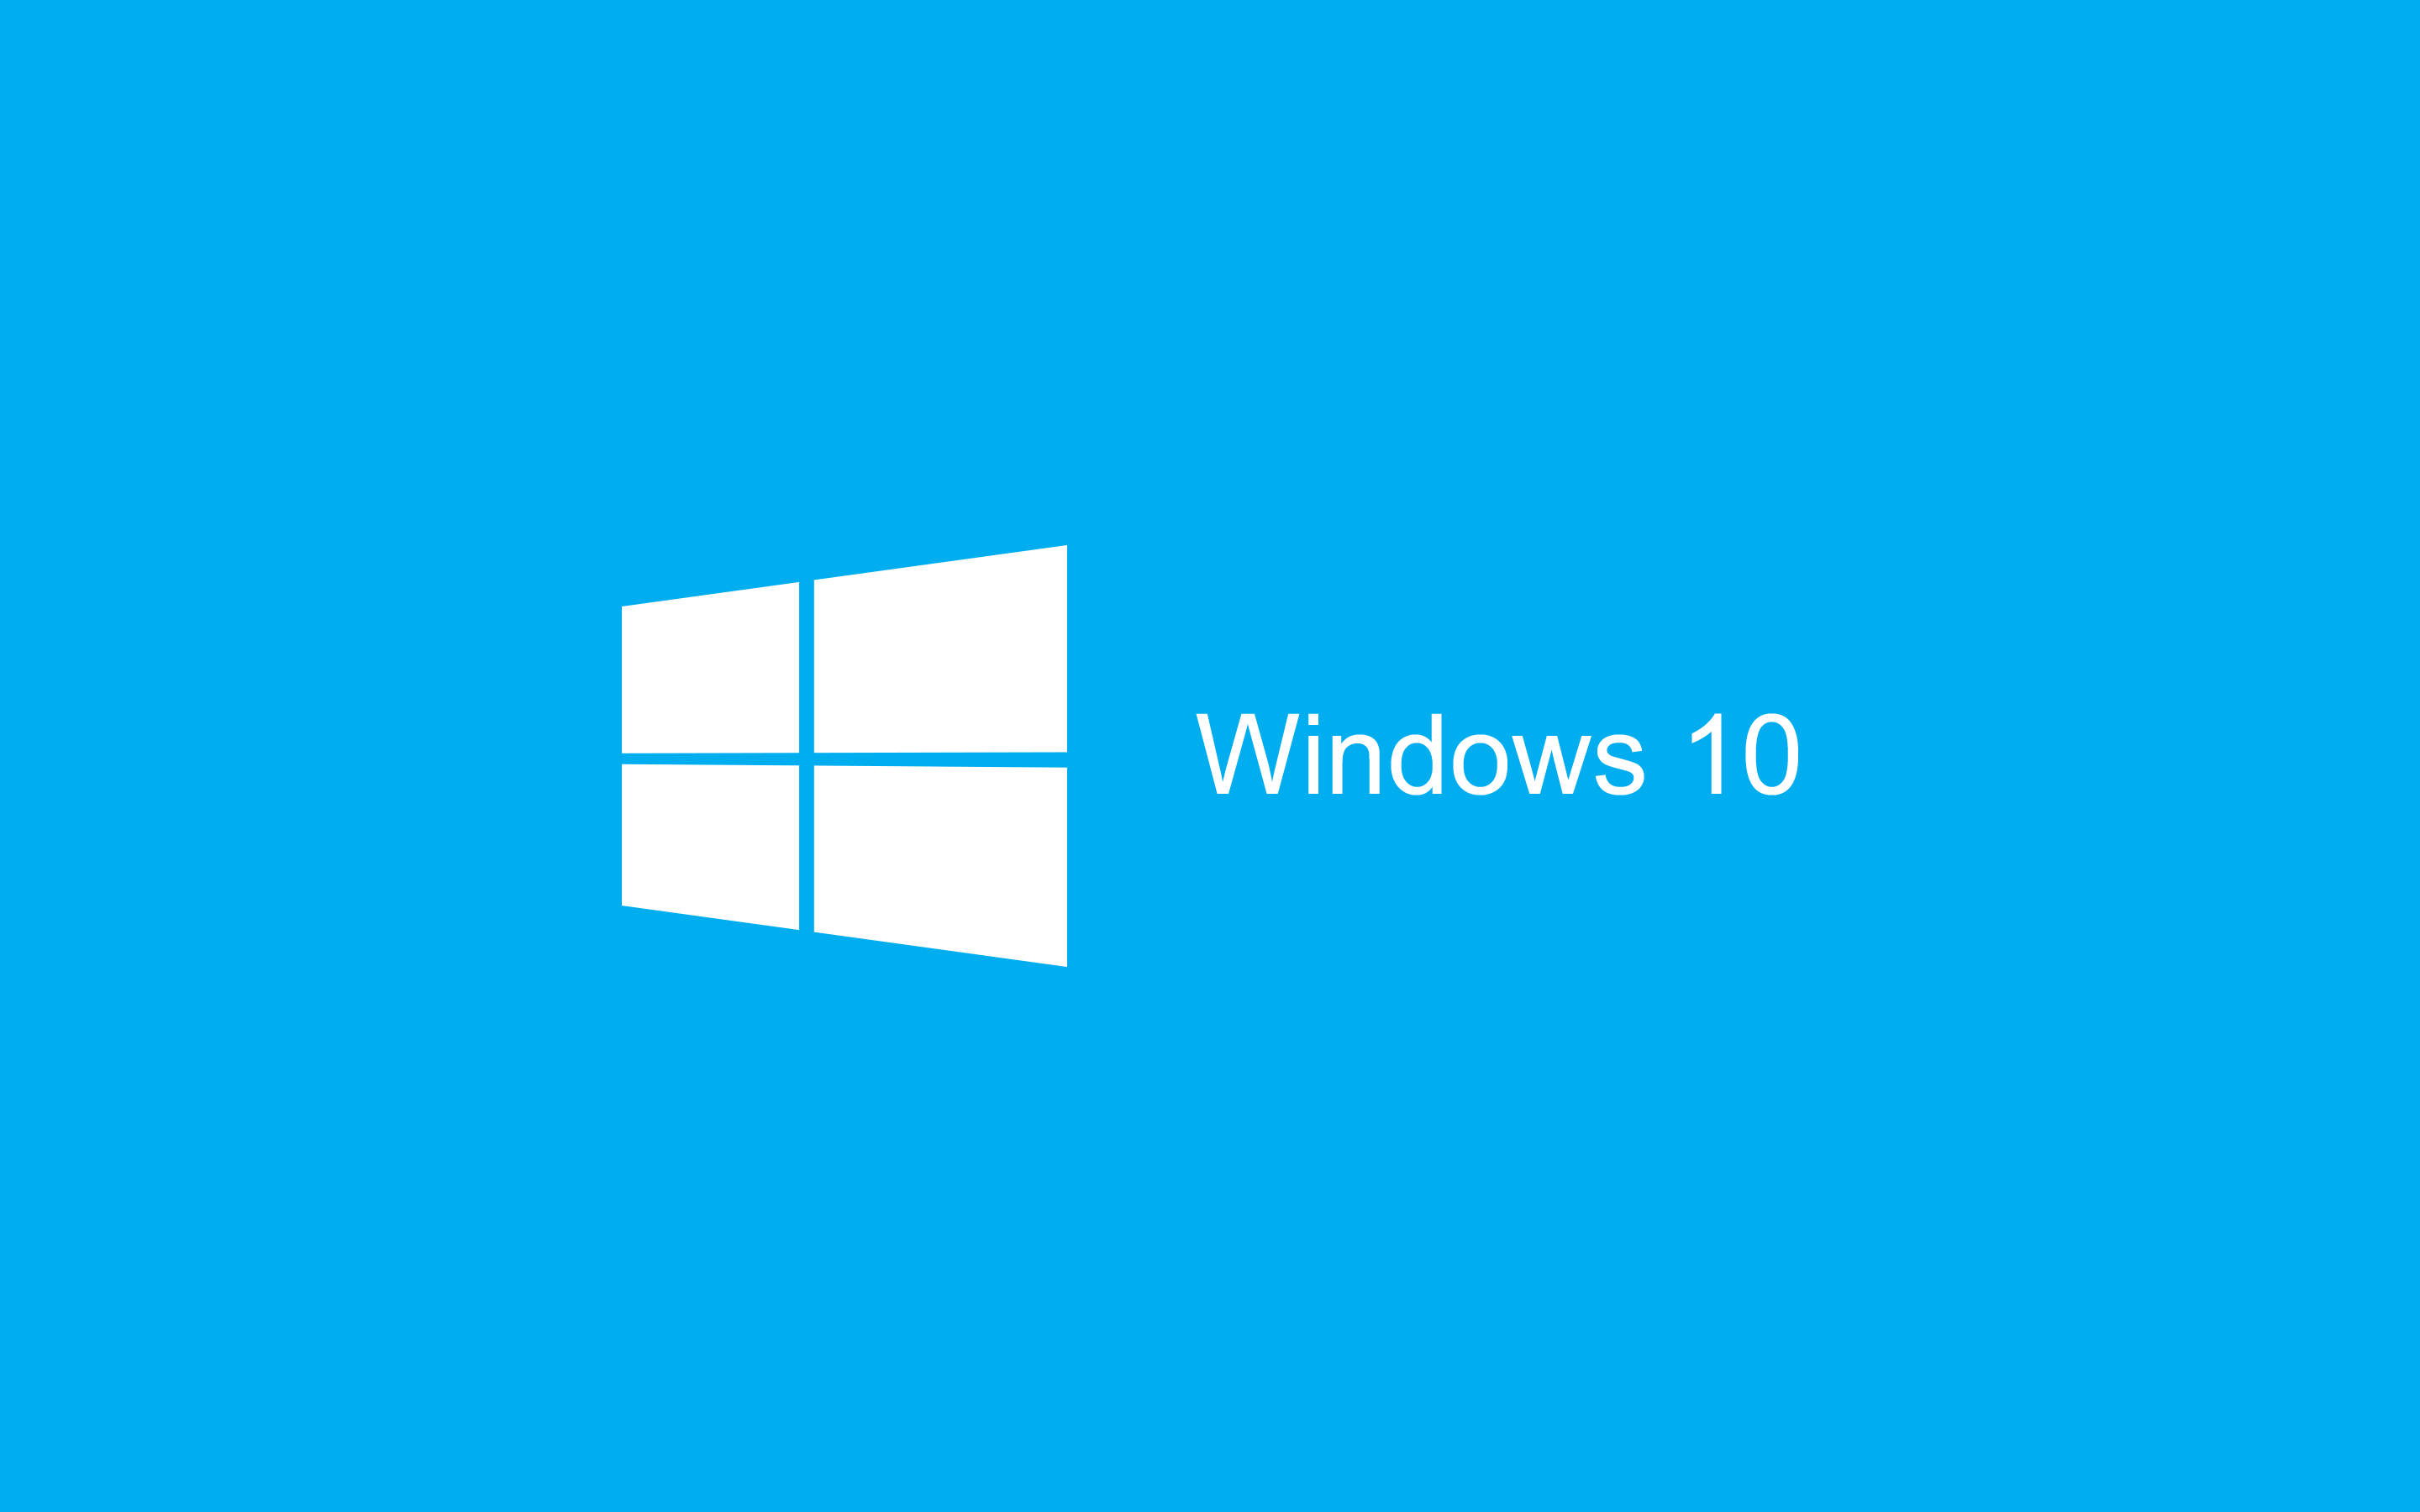 windows 10 compatible printers